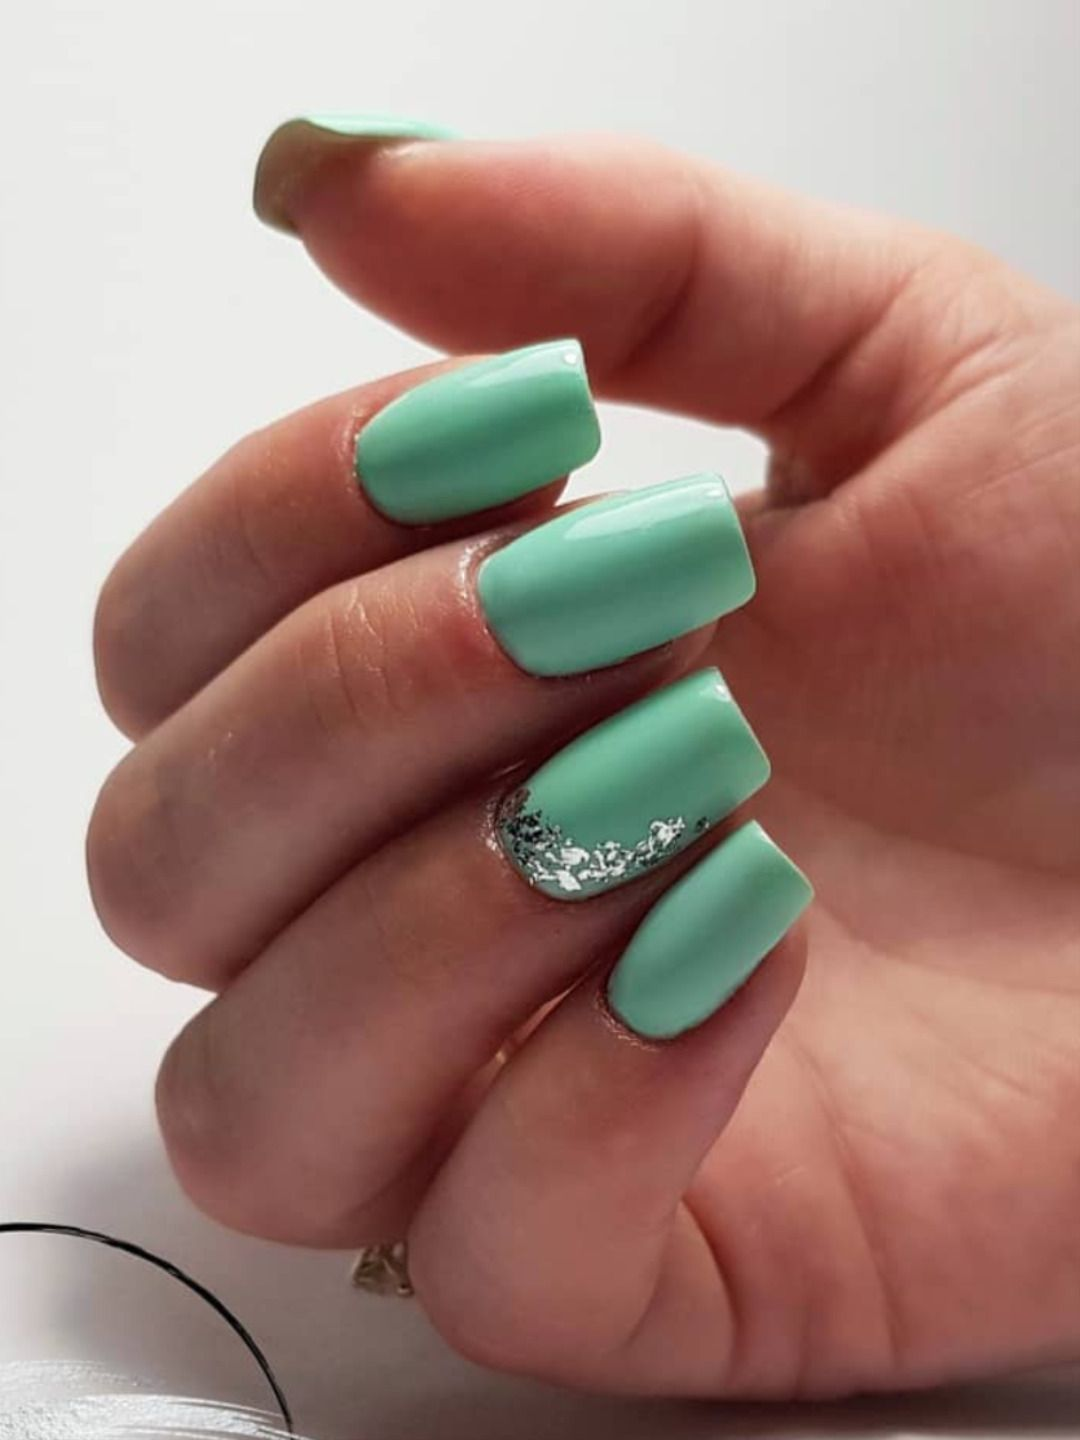 Cute Mint Green Square Nails 2020 With Silver Glitter On Accent Nail Design Summernails In 2020 Mint Green Nails Cute Summer Nails Green Nail Designs